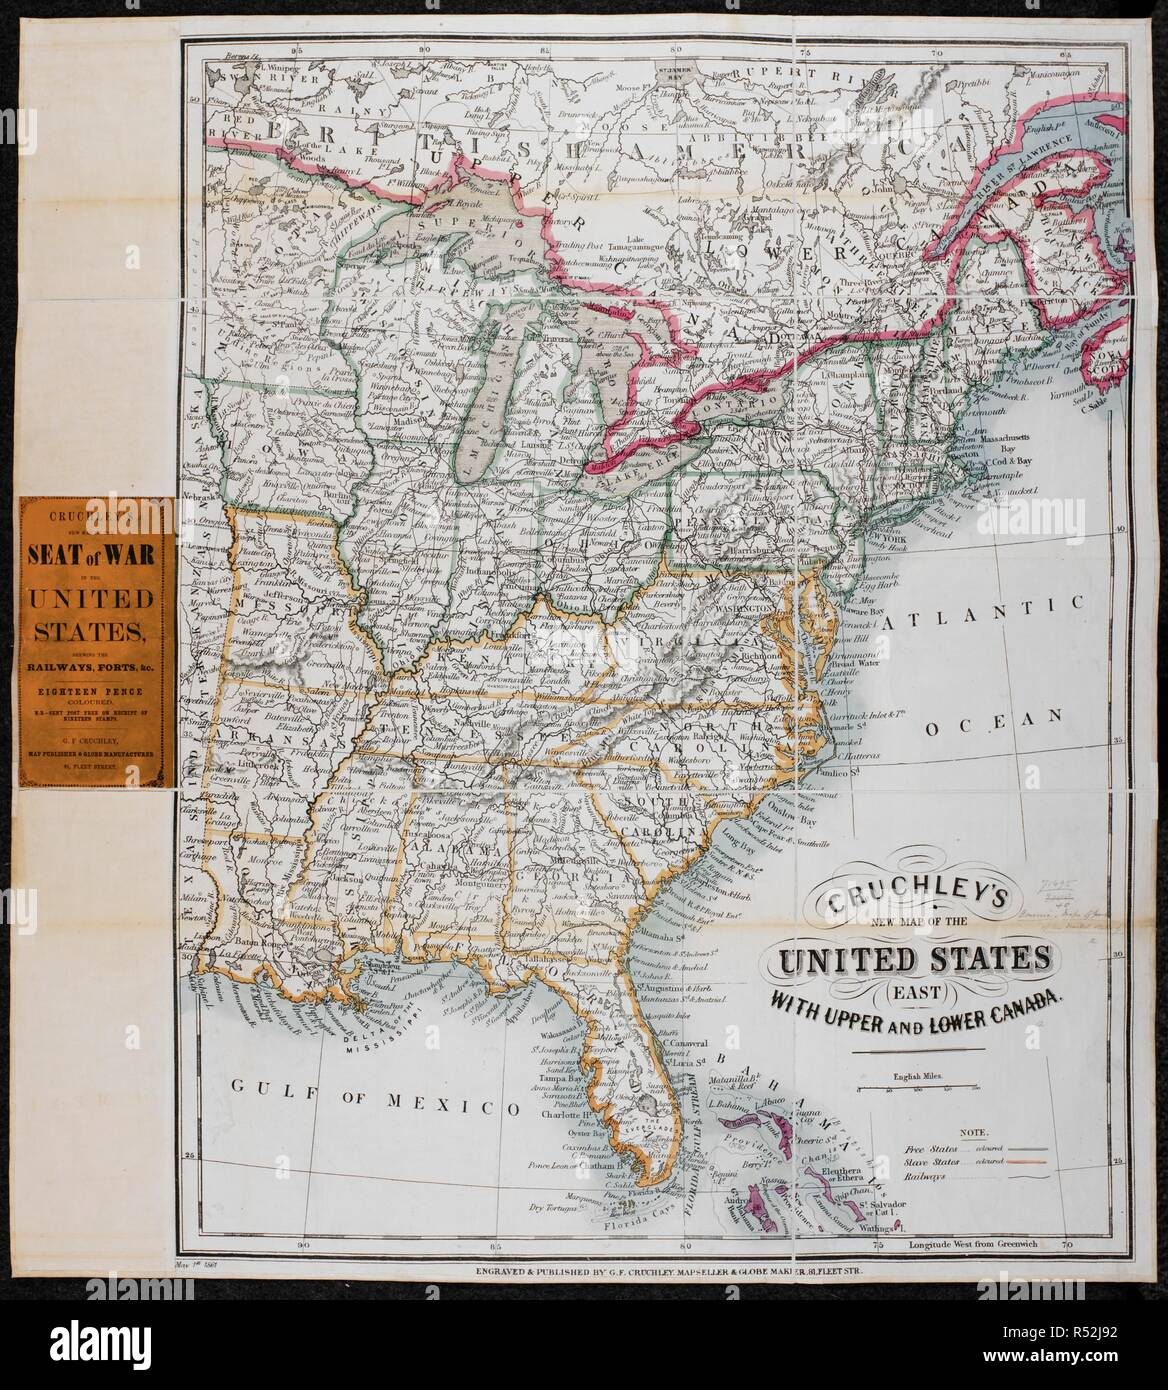 Map Of Upper United States And Lower Canada A map of the United States (East), with Upper and Lower Canada